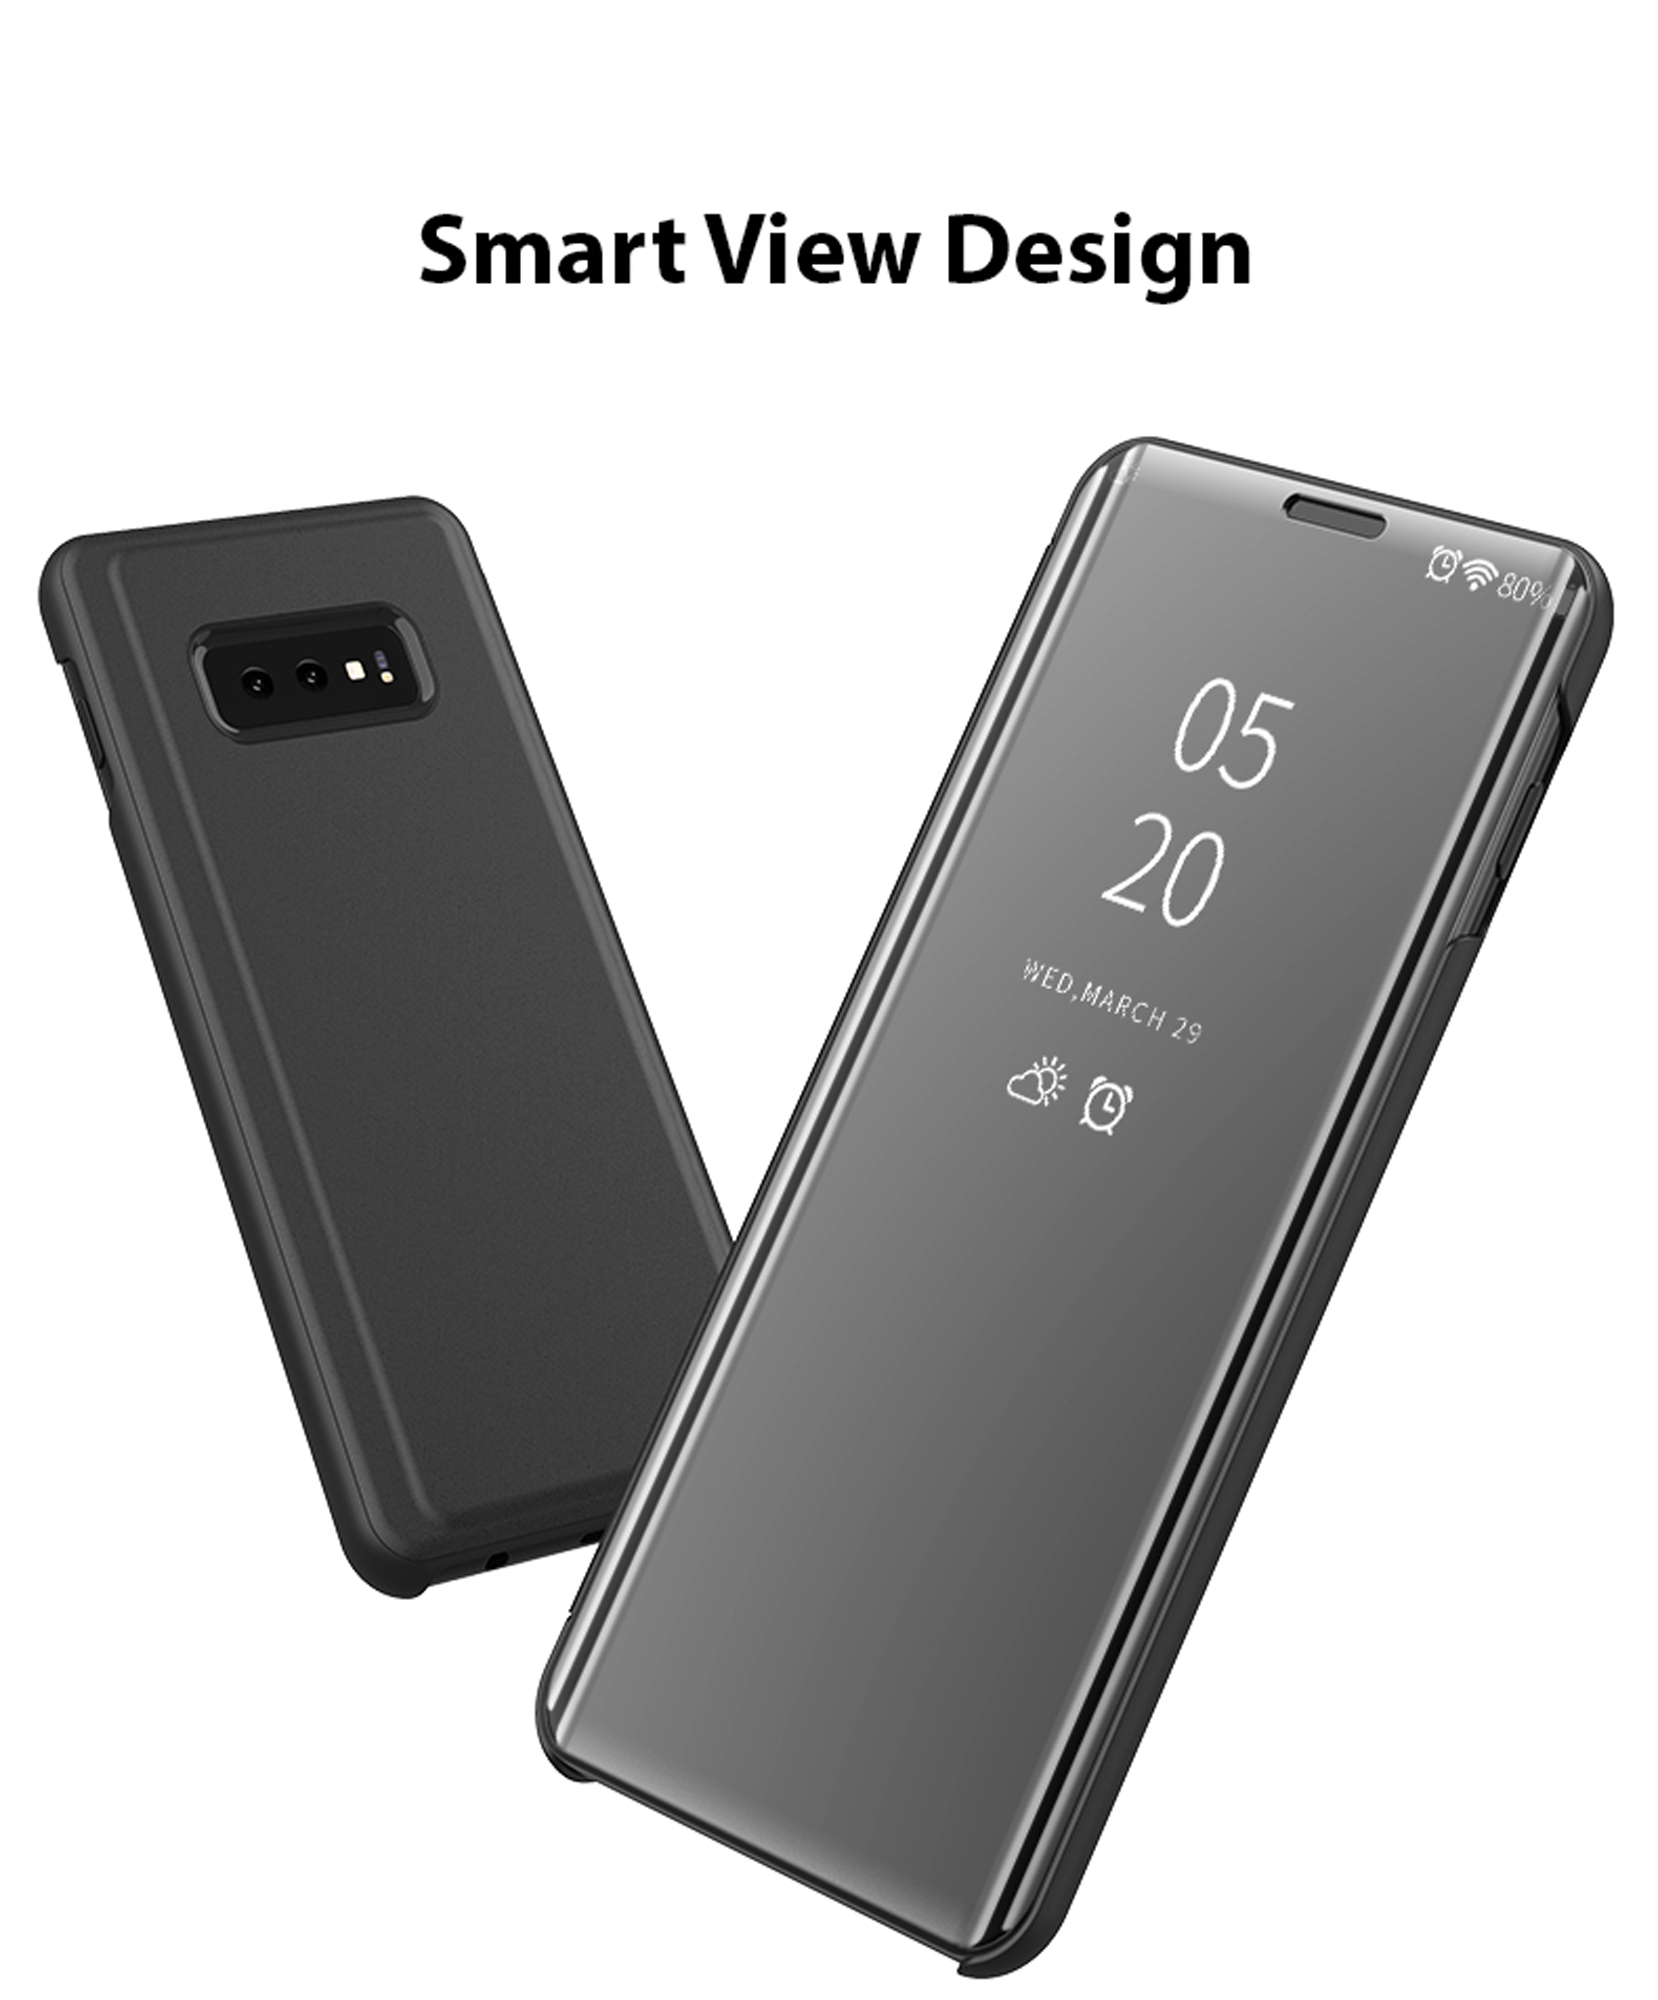 New-Samsung-Galaxy-S9-S10-Plus-Smart-View-Mirror-Leather-Flip-Stand-Case-Cover thumbnail 50